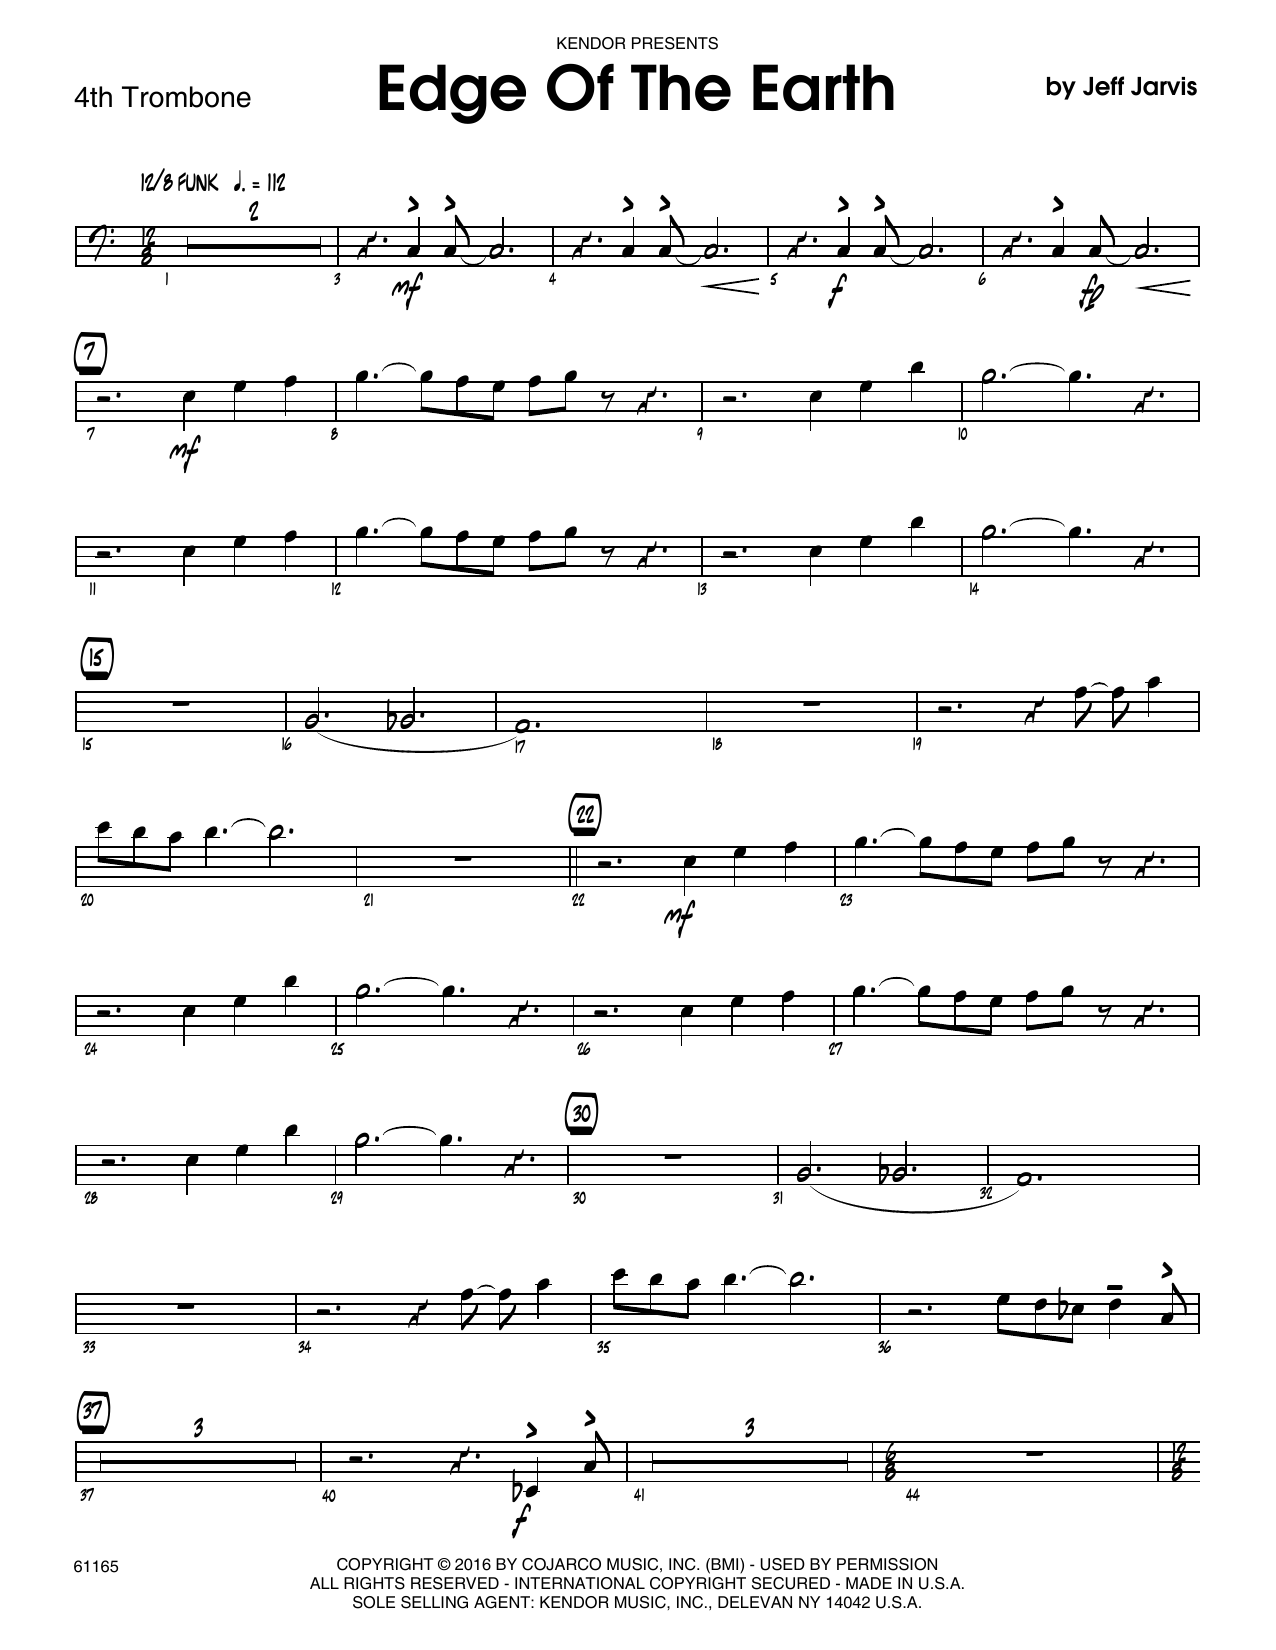 Edge Of The Earth - 4th Trombone Sheet Music